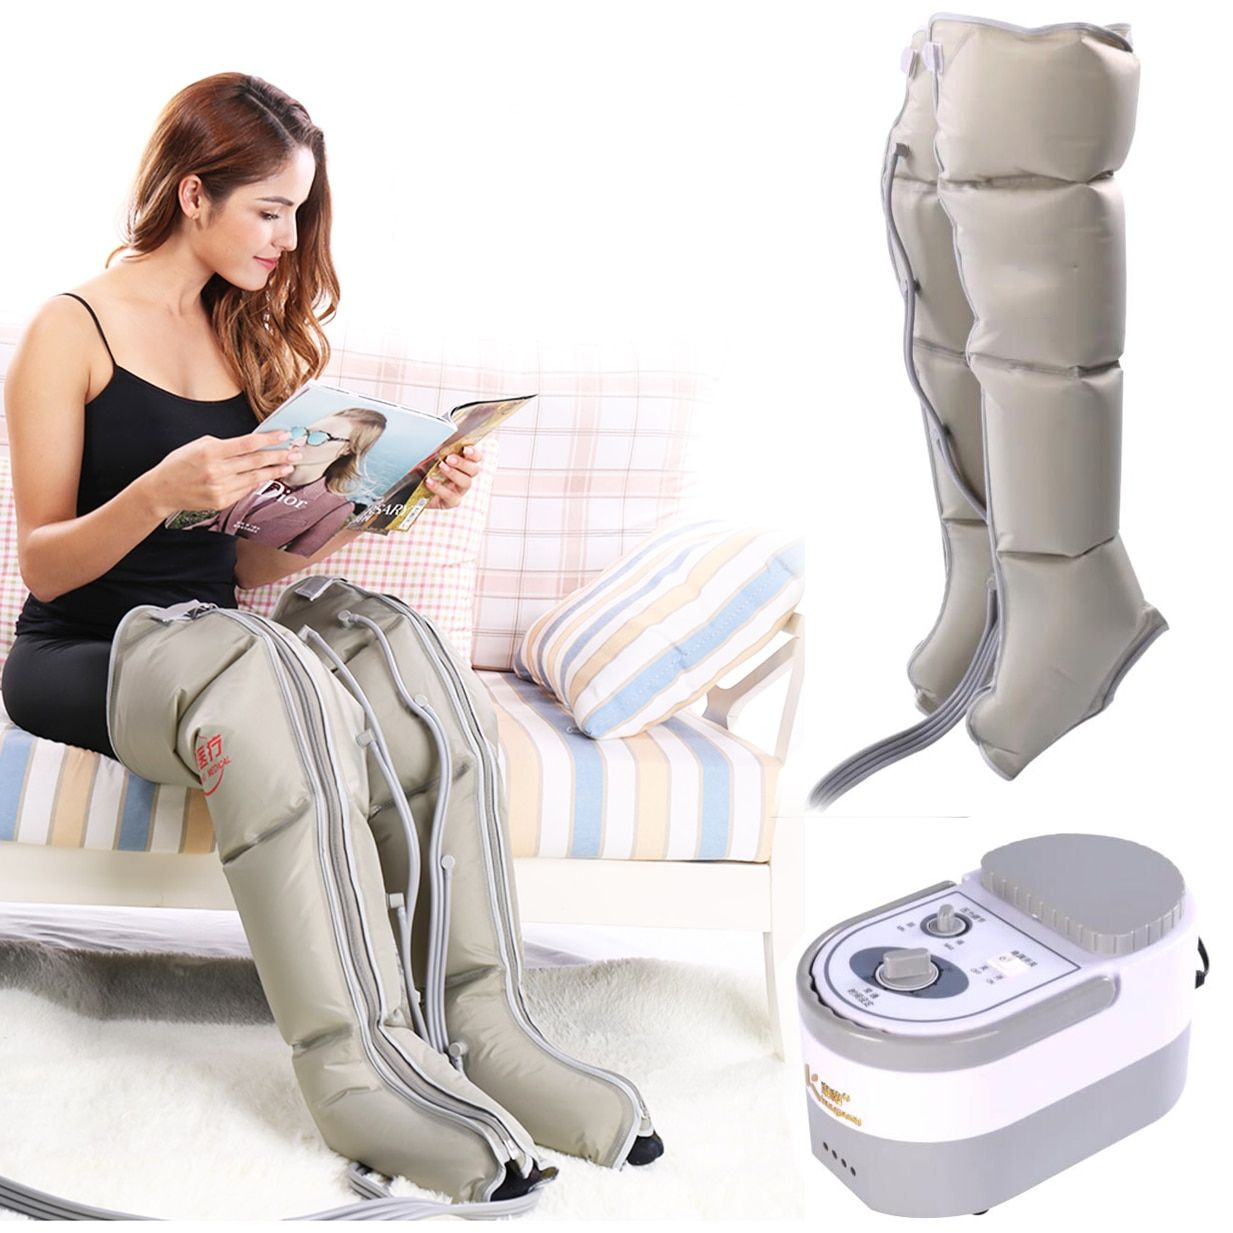 Masseur électrique de jambe de Compression d'air enveloppant la Machine de Massage de mollet de chevilles de pied favorisent la Circulation sanguine soulagent la Fatigue de douleur